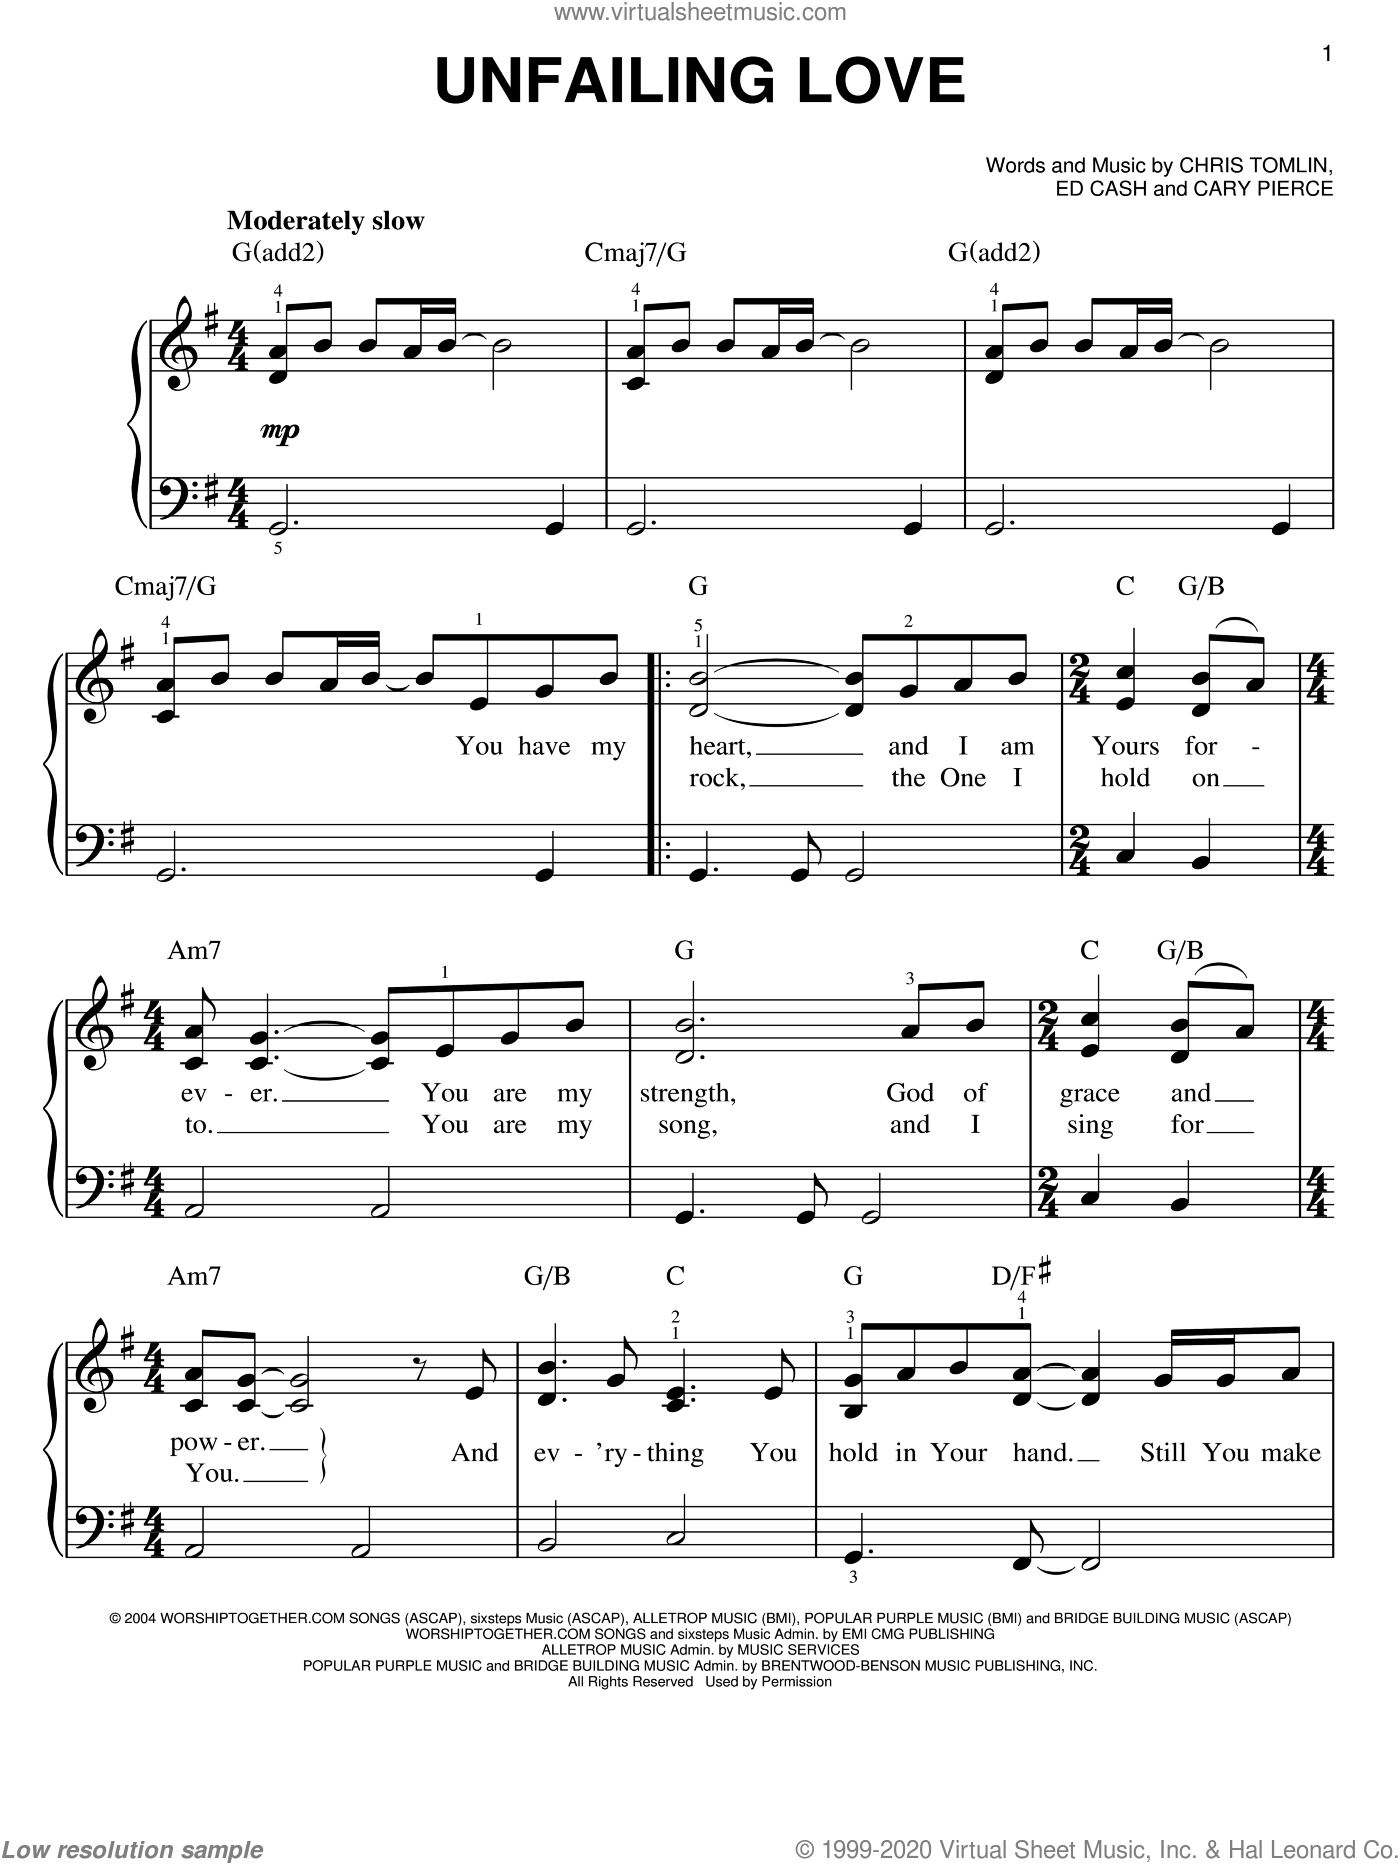 Unfailing Love sheet music for piano solo by Chris Tomlin, Cary Pierce and Ed Cash, easy skill level